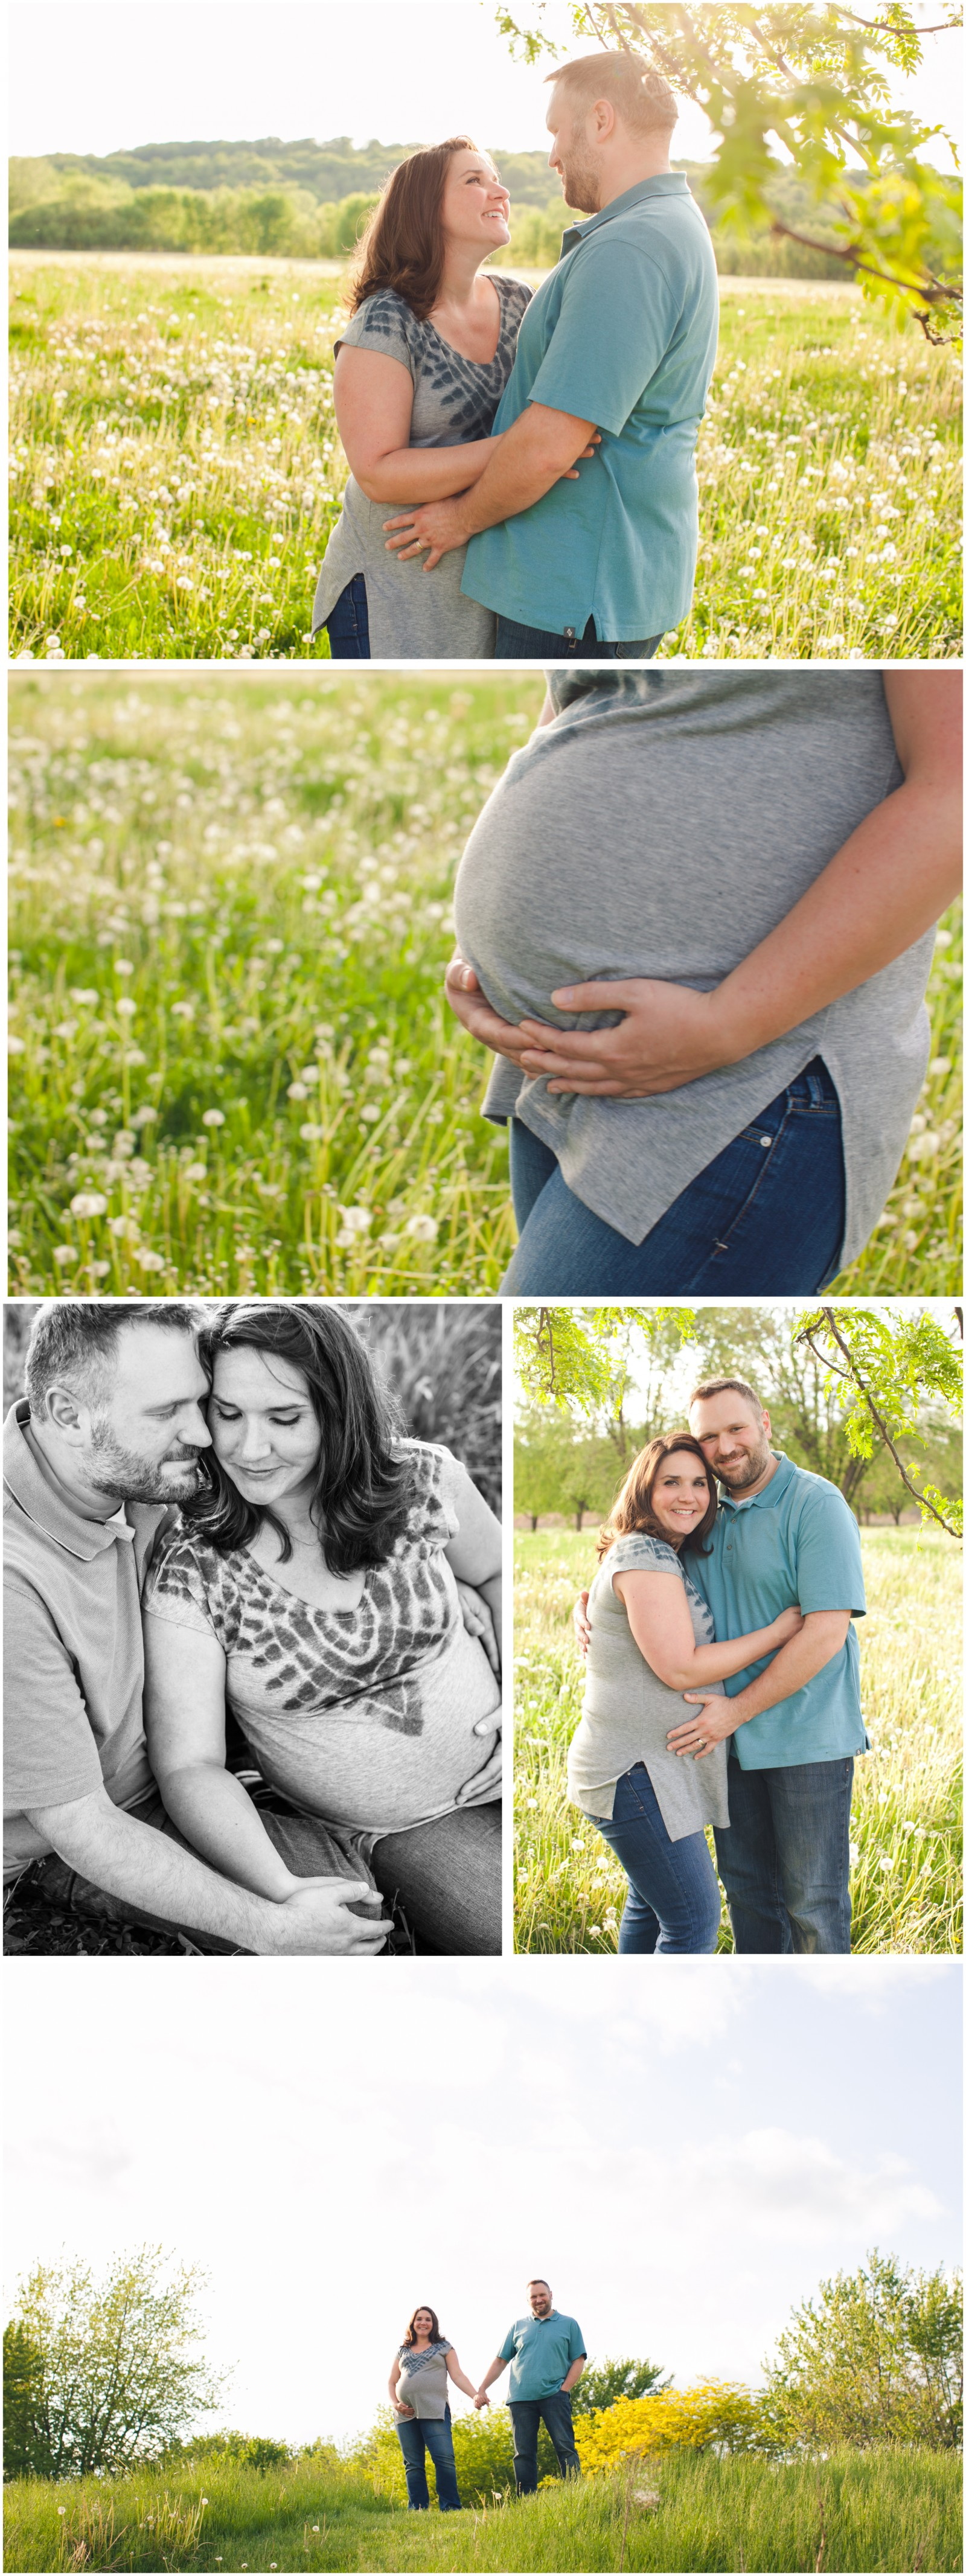 Maternity Session Lafayette Indiana Pearl Photo & Design 3